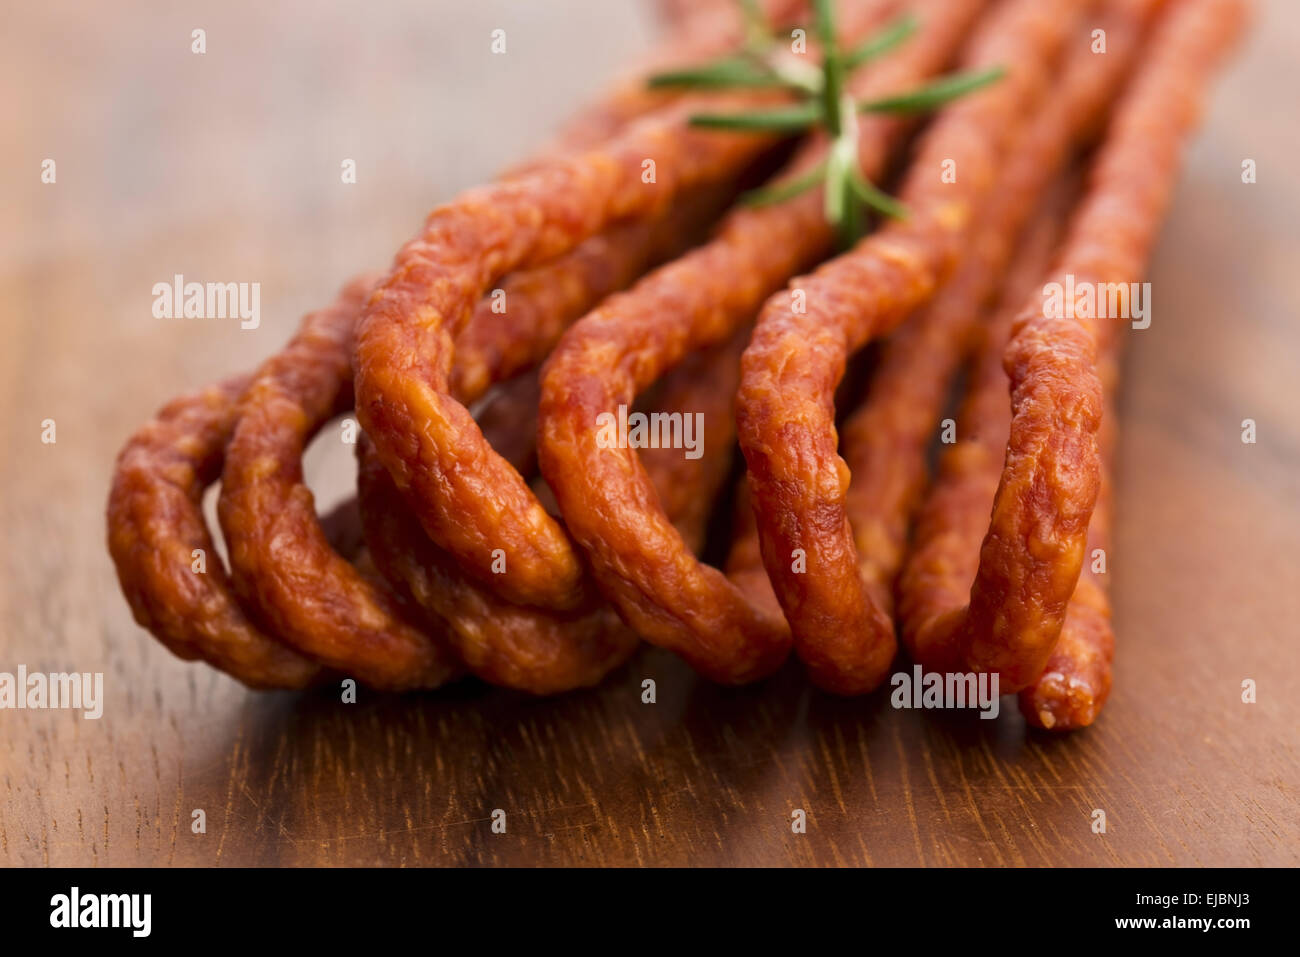 Kabanos Polish Long Thin Dry Sausage Made Of Pork